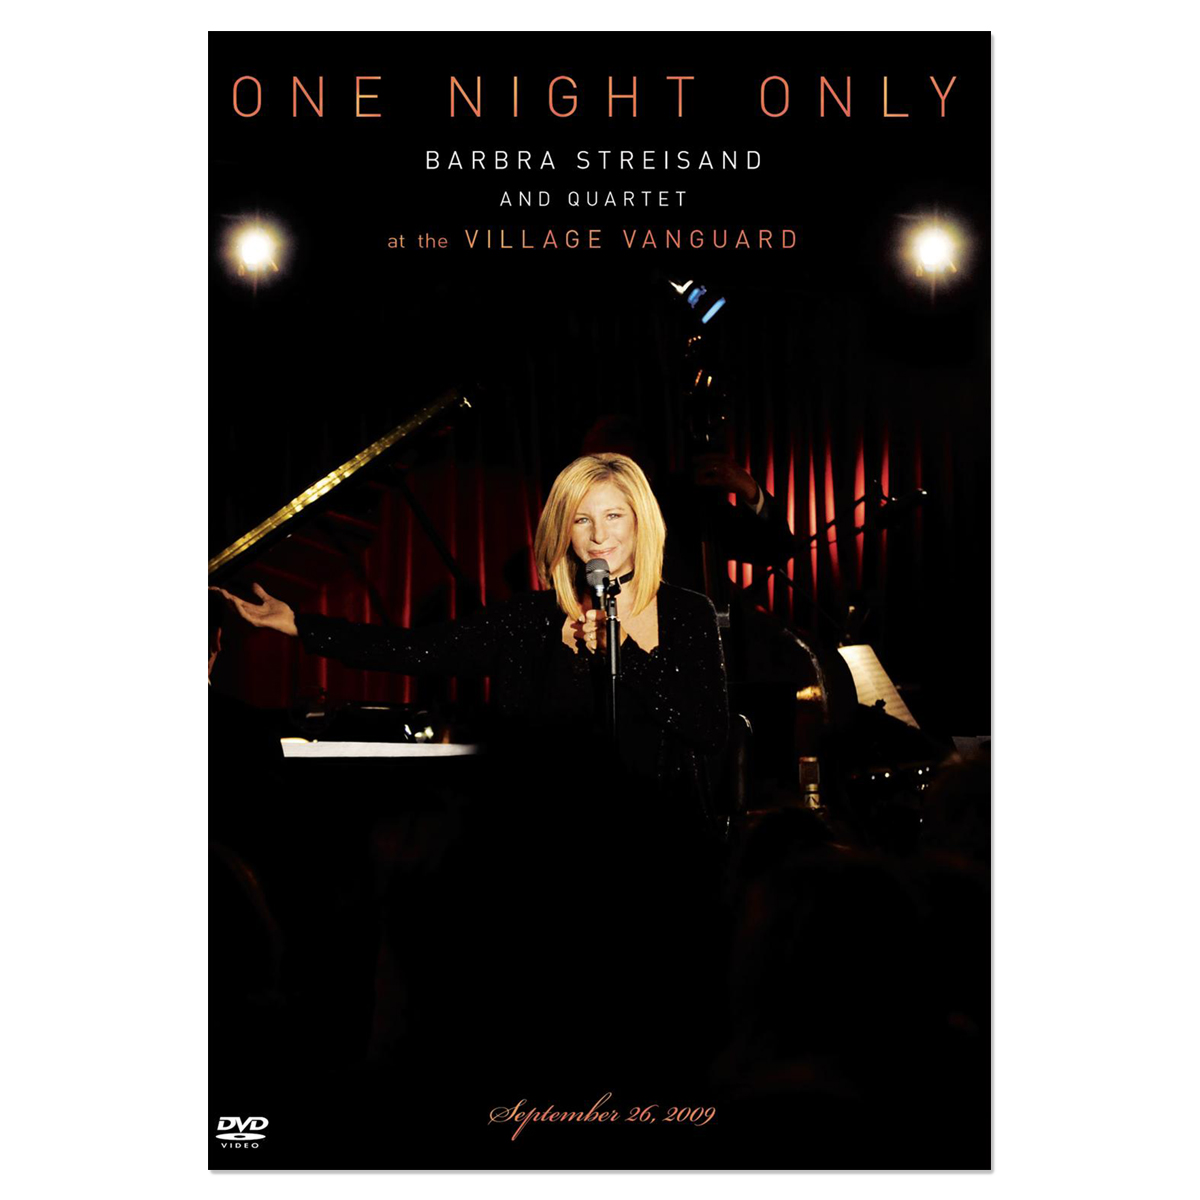 One Night Only Barbra Streisand And Quartet At The Village Vanguard September 26, 2009 Deluxe Edition DVD